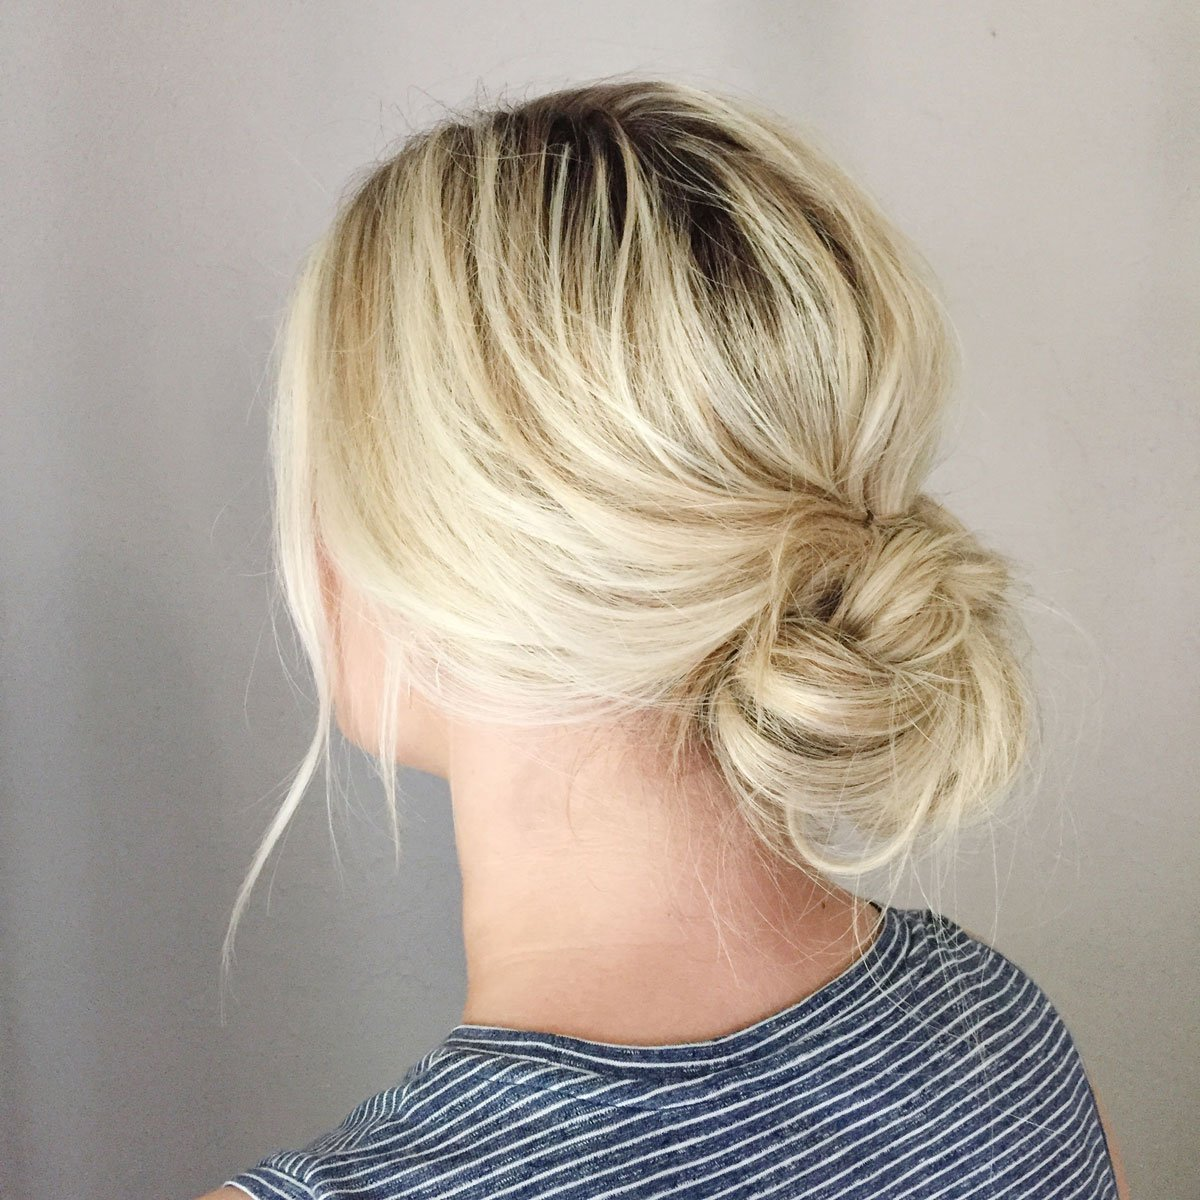 Low messy fun bun